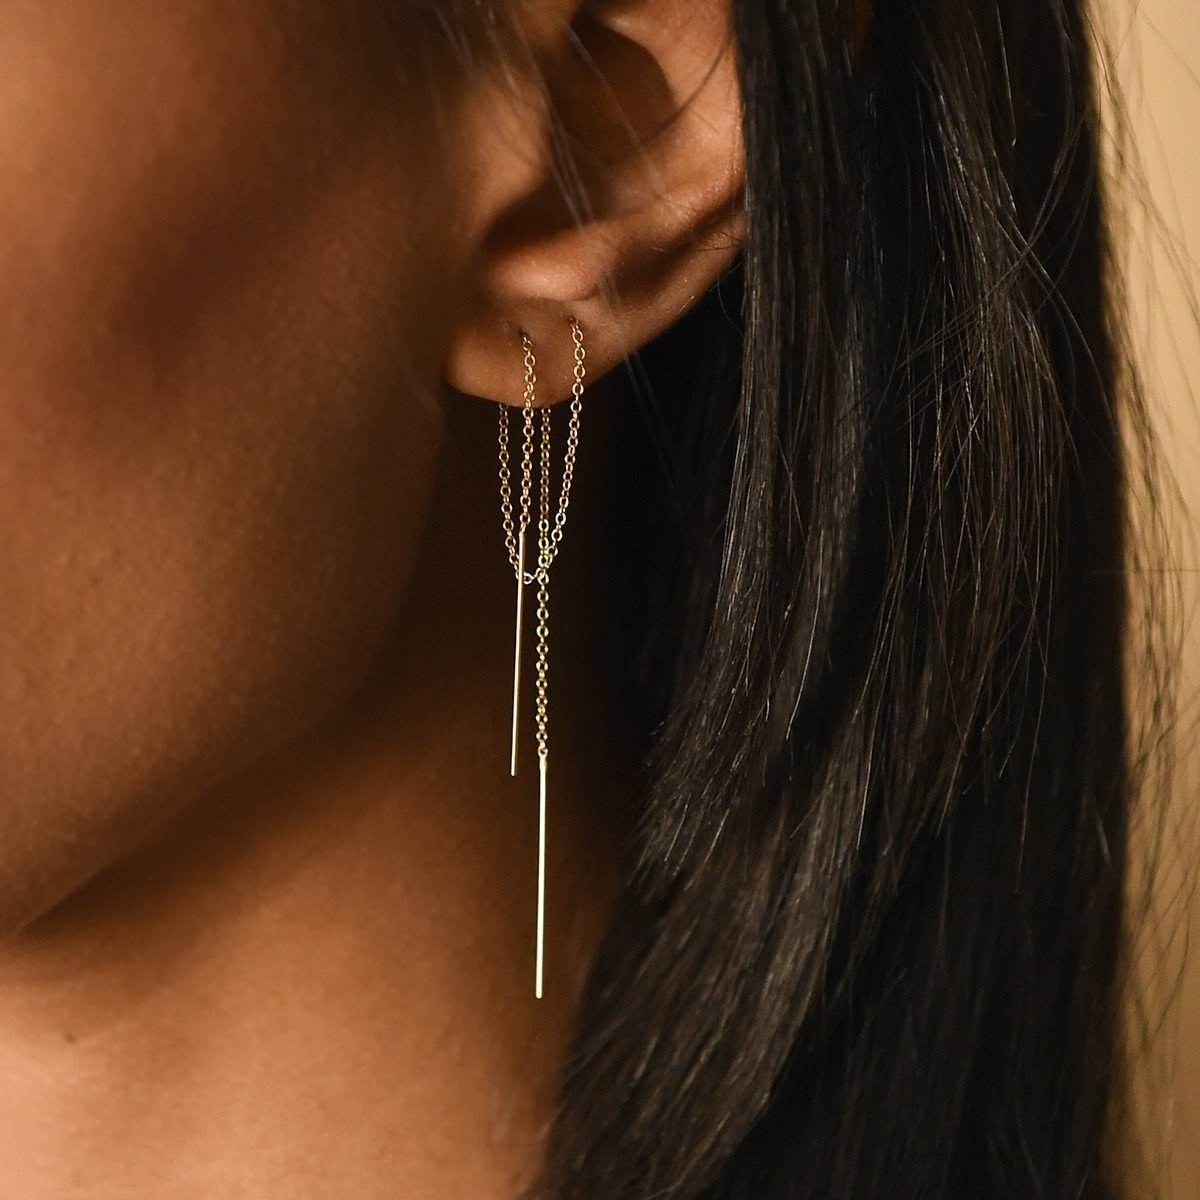 small gold chain thread earrings threaded through two piercings in an ear